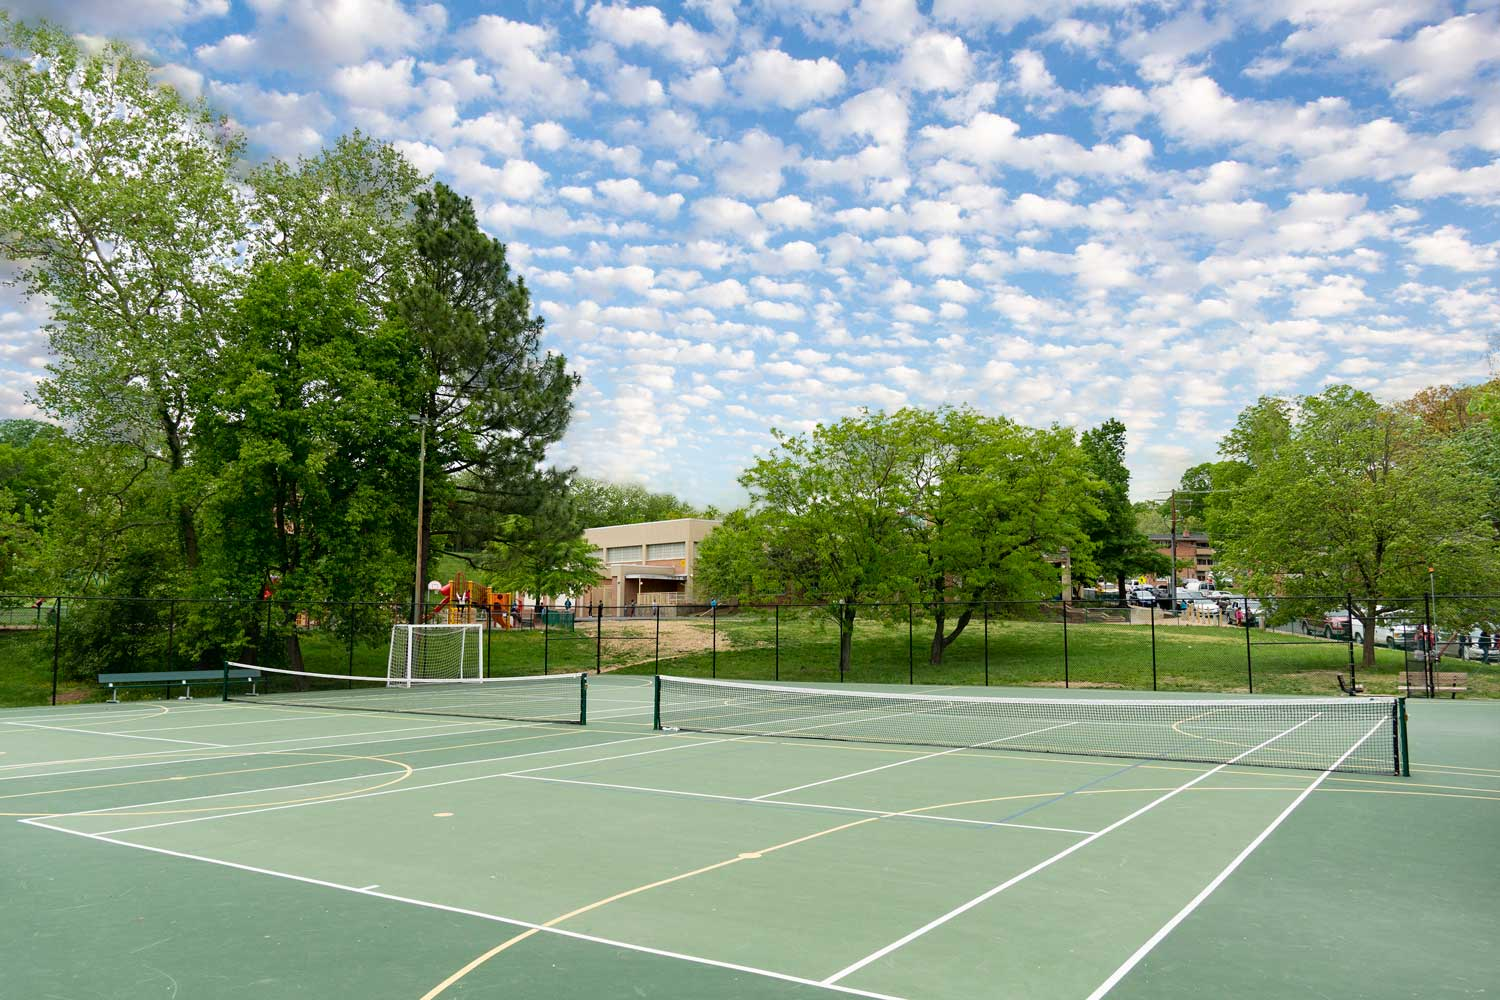 10 minutes to recreational center with tennis courts